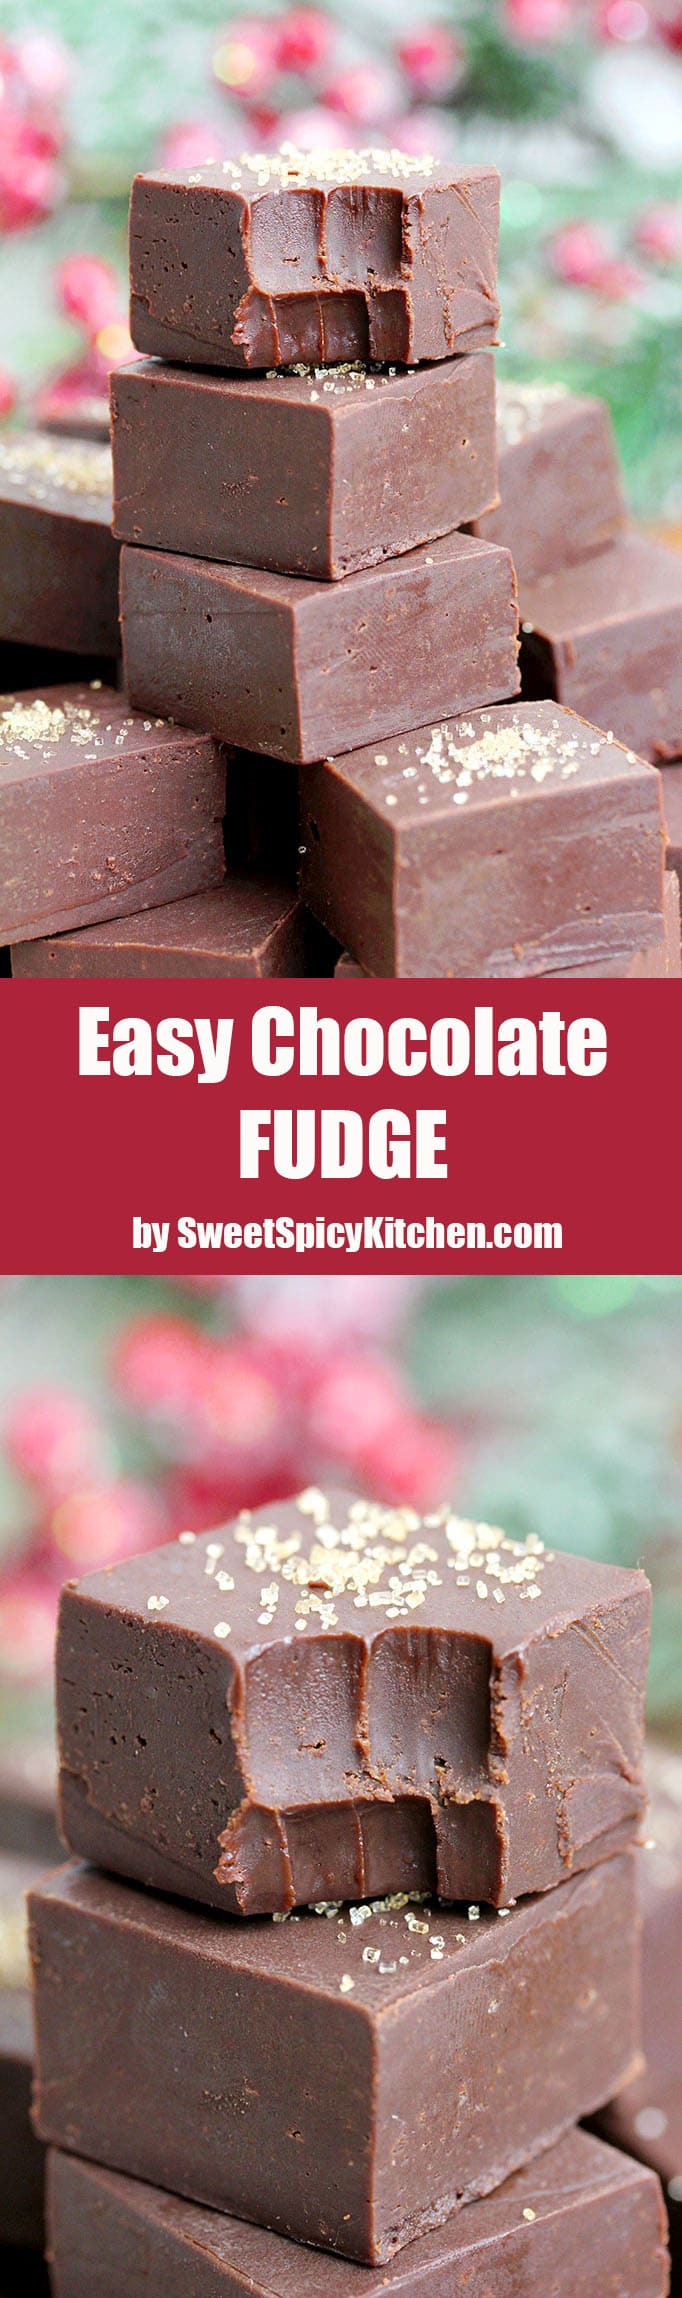 Easy Chocolate Fudge Recipe – this creamy chocolate fudge that is made of only four ingredients in 10 minutes time is a perfect holiday treat